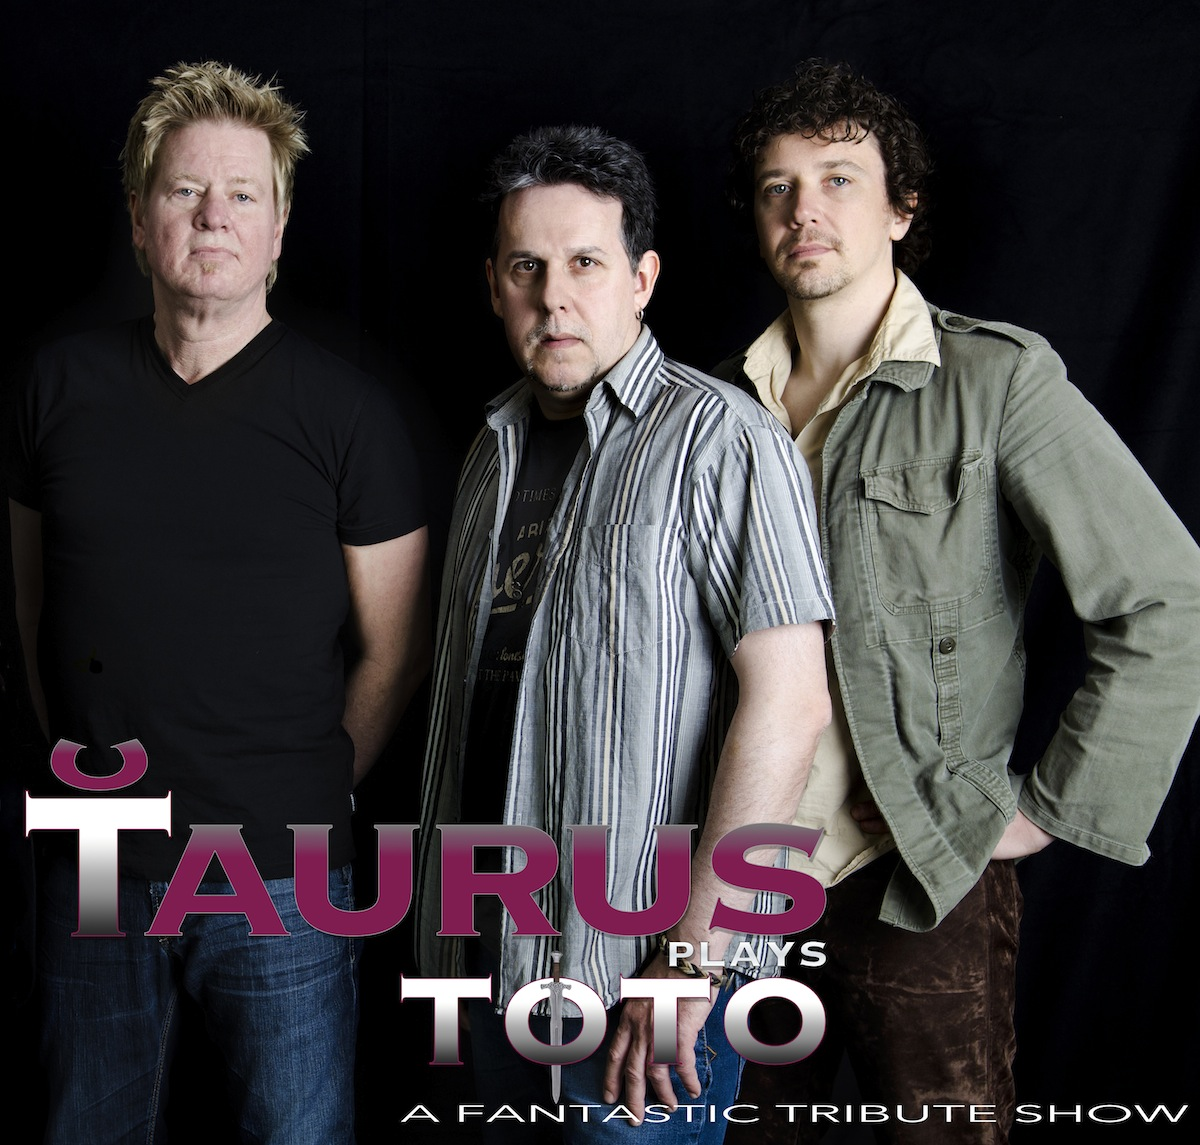 Taurus plays Toto Logo 3D-3